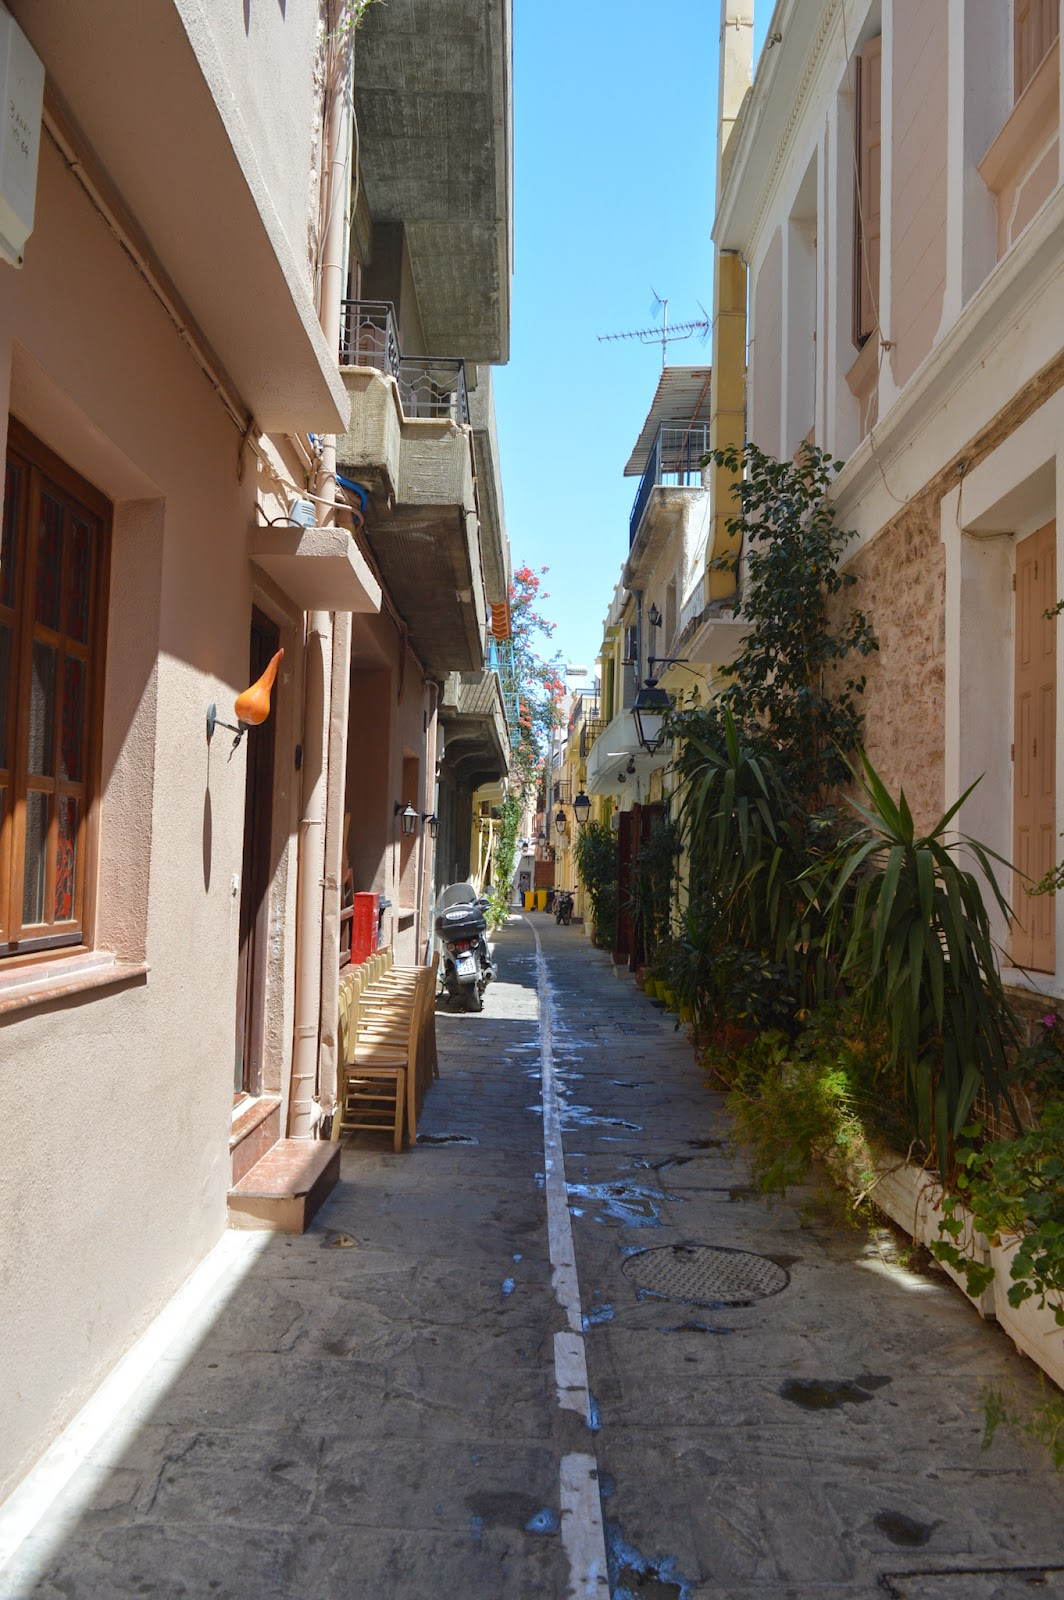 Small road inside the old town of Rethimno in Crete, Greece.